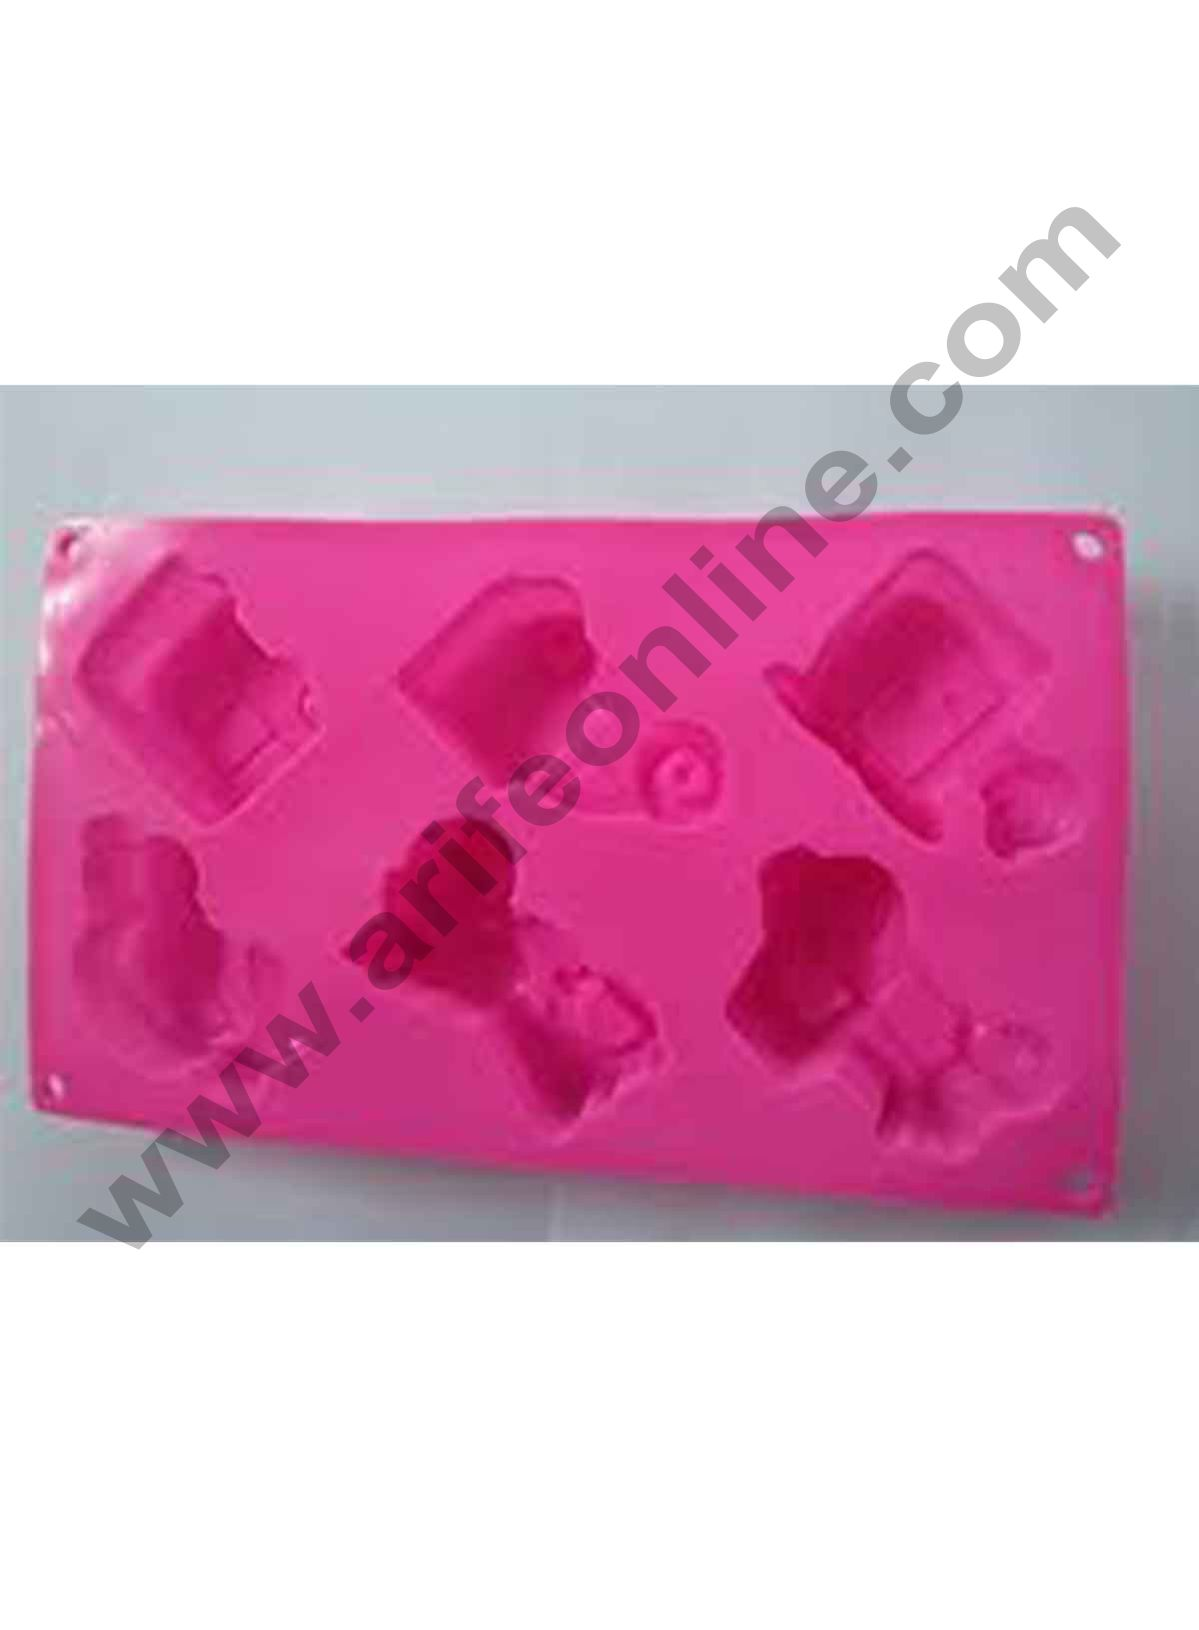 Cake Decor Silicone 6 Cavity Car Bike Jeep Bus Van Helicopter Design Muffin Mould Soap Mould (Output Weight : Approx 100 Grams)